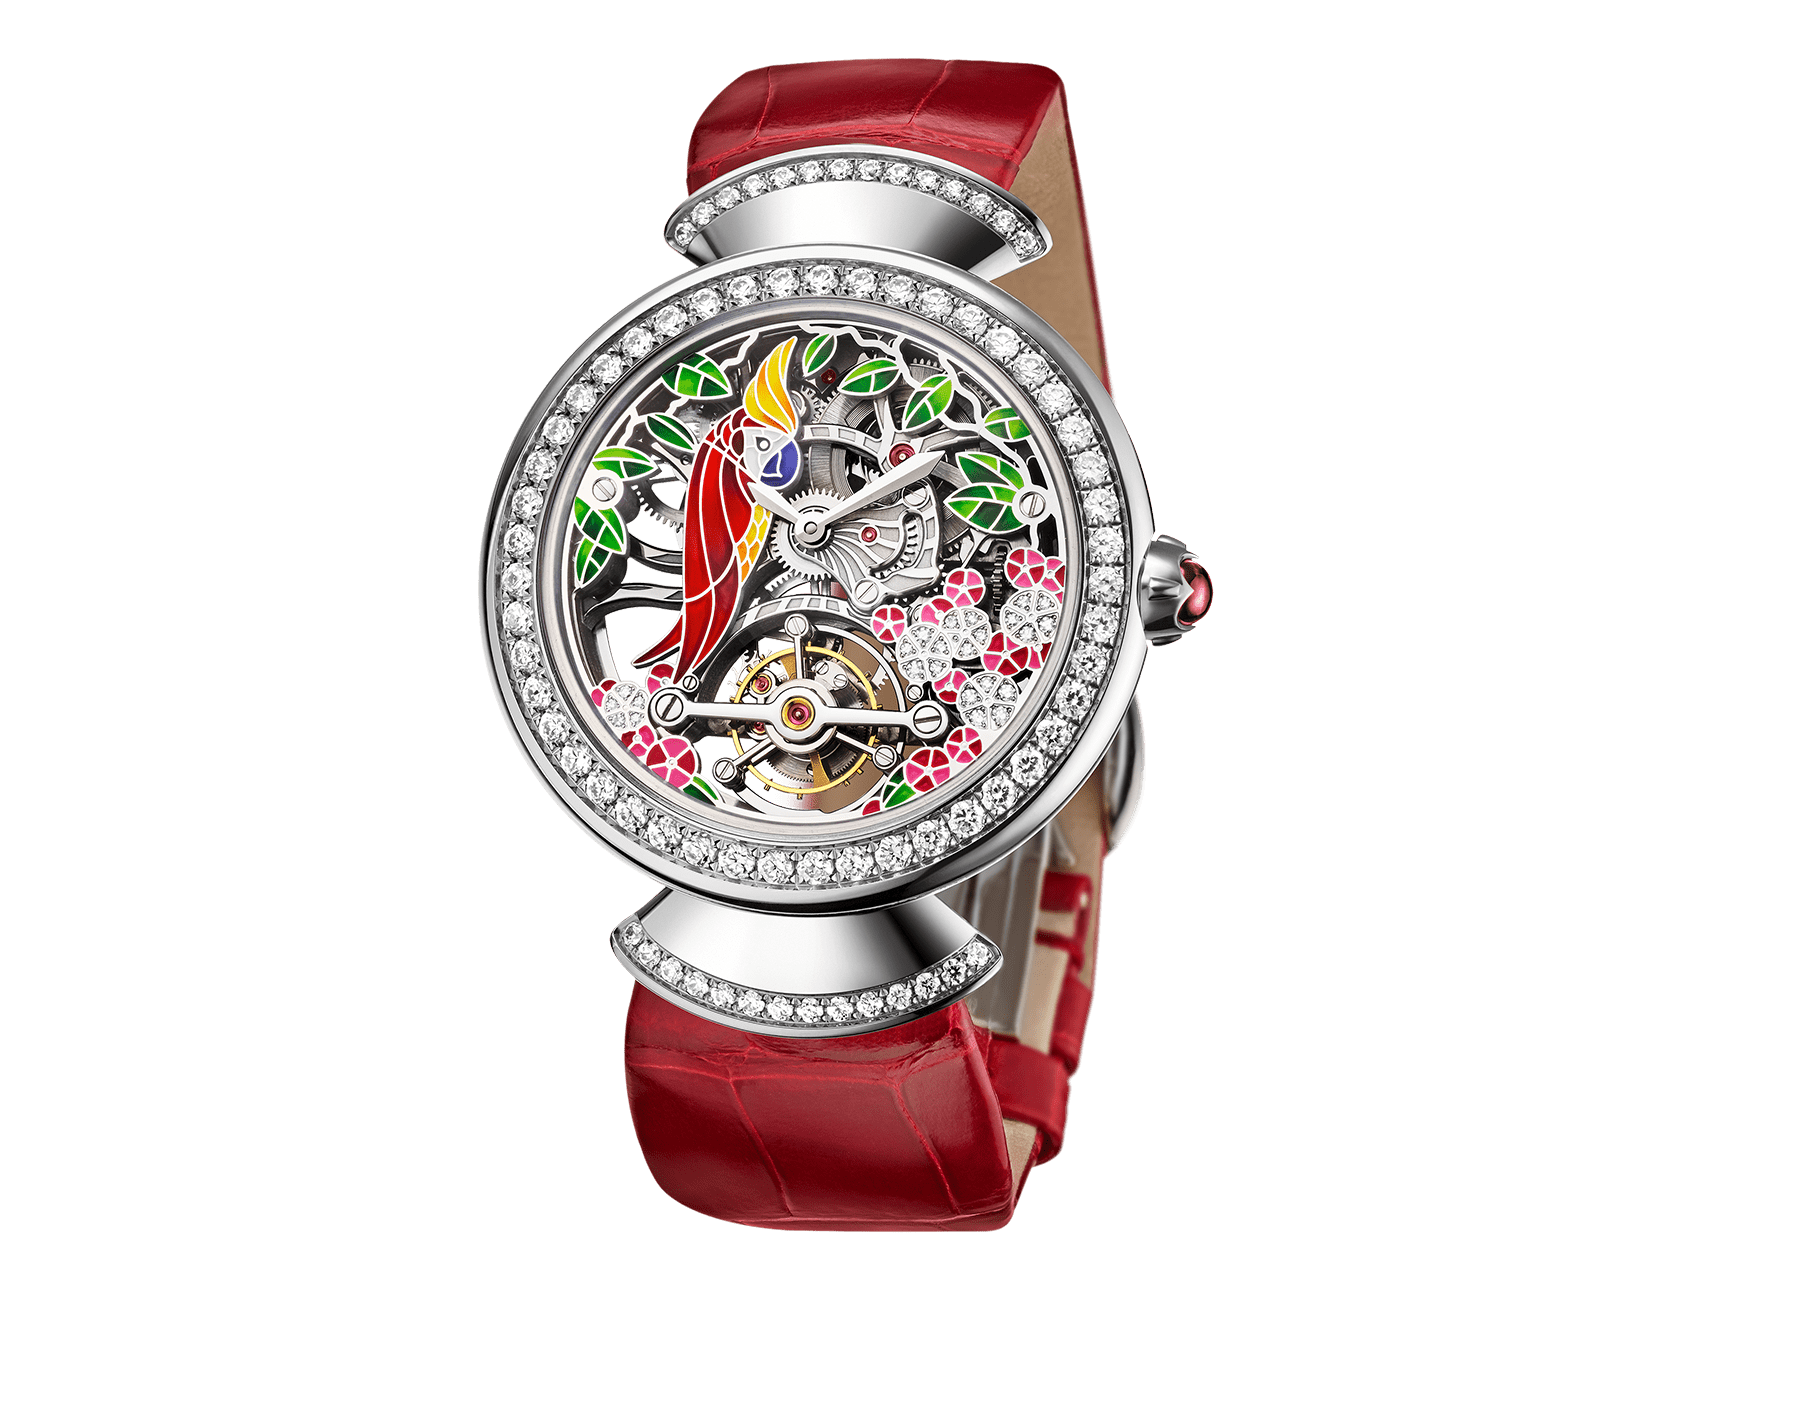 DIVAS' DREAM watch with 18kt white gold mechanical manufacture skeletonized movement and tourbillon. 18 kt white gold case set with brilliant-cut diamonds, dial with hand painted parrot, flowers and leaves set with diamonds and red alligator bracelet 102517 image 1